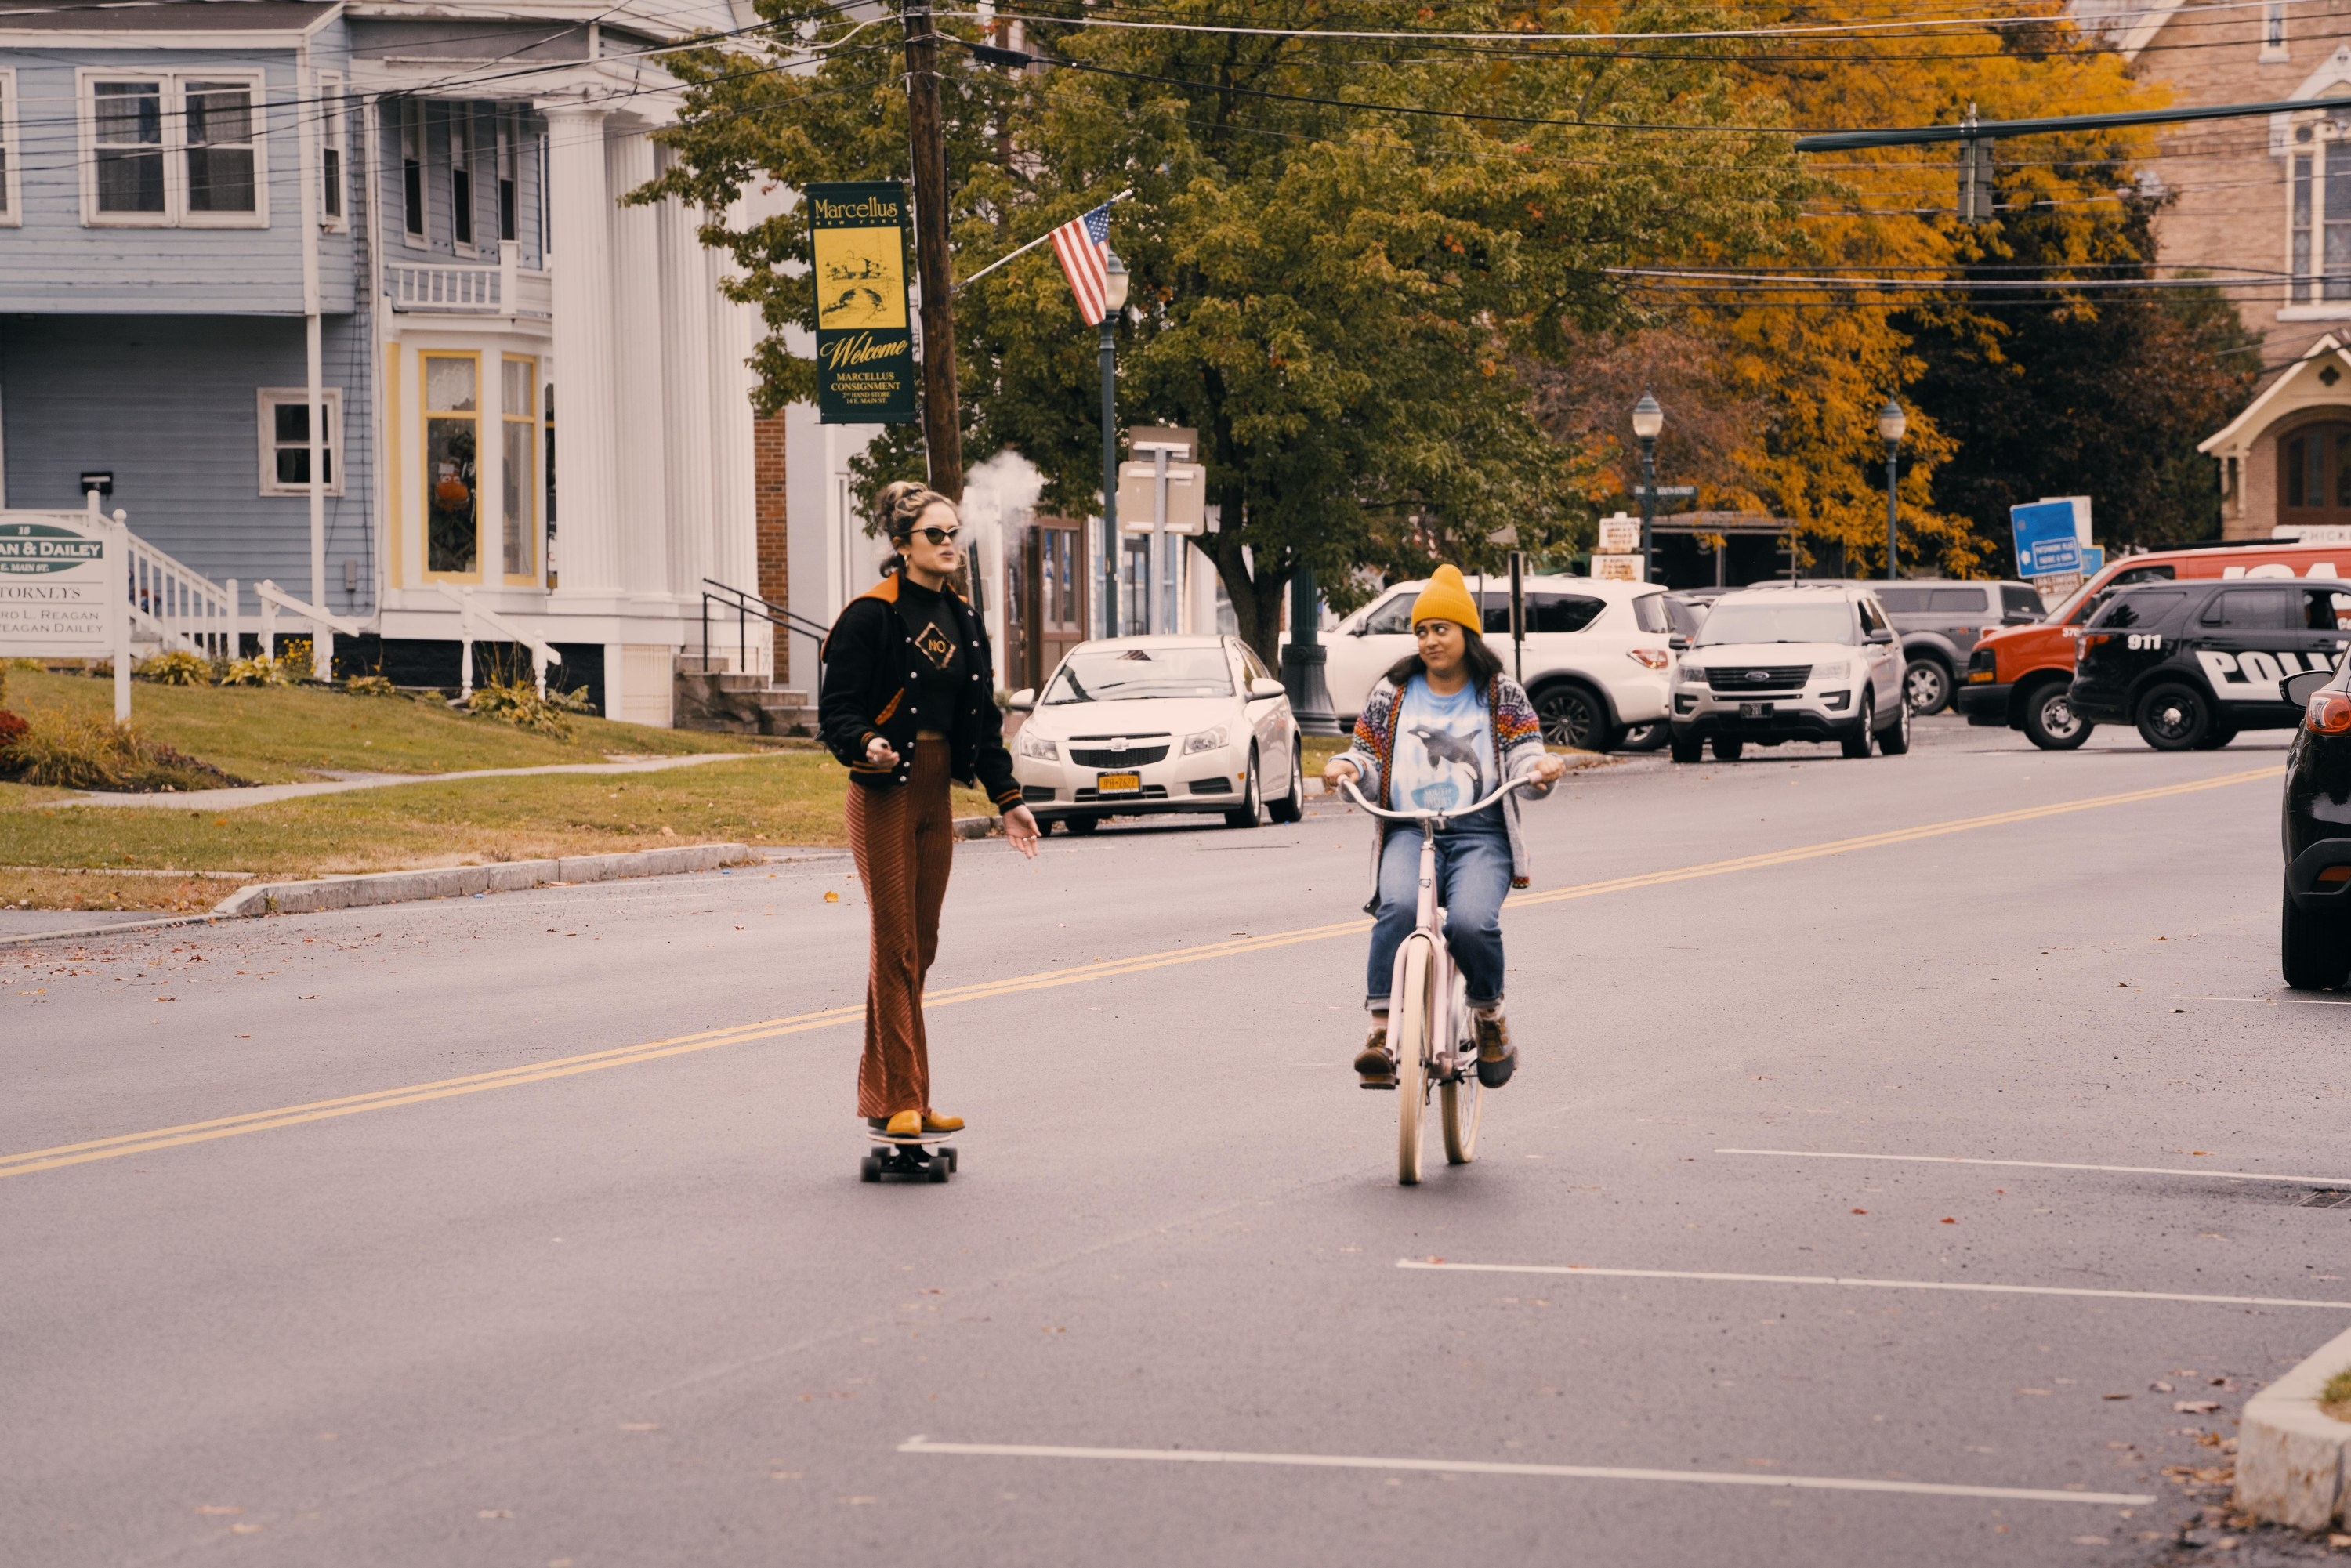 Lupe rides a skateboard while Sunny rides a bike through downtown in a small town